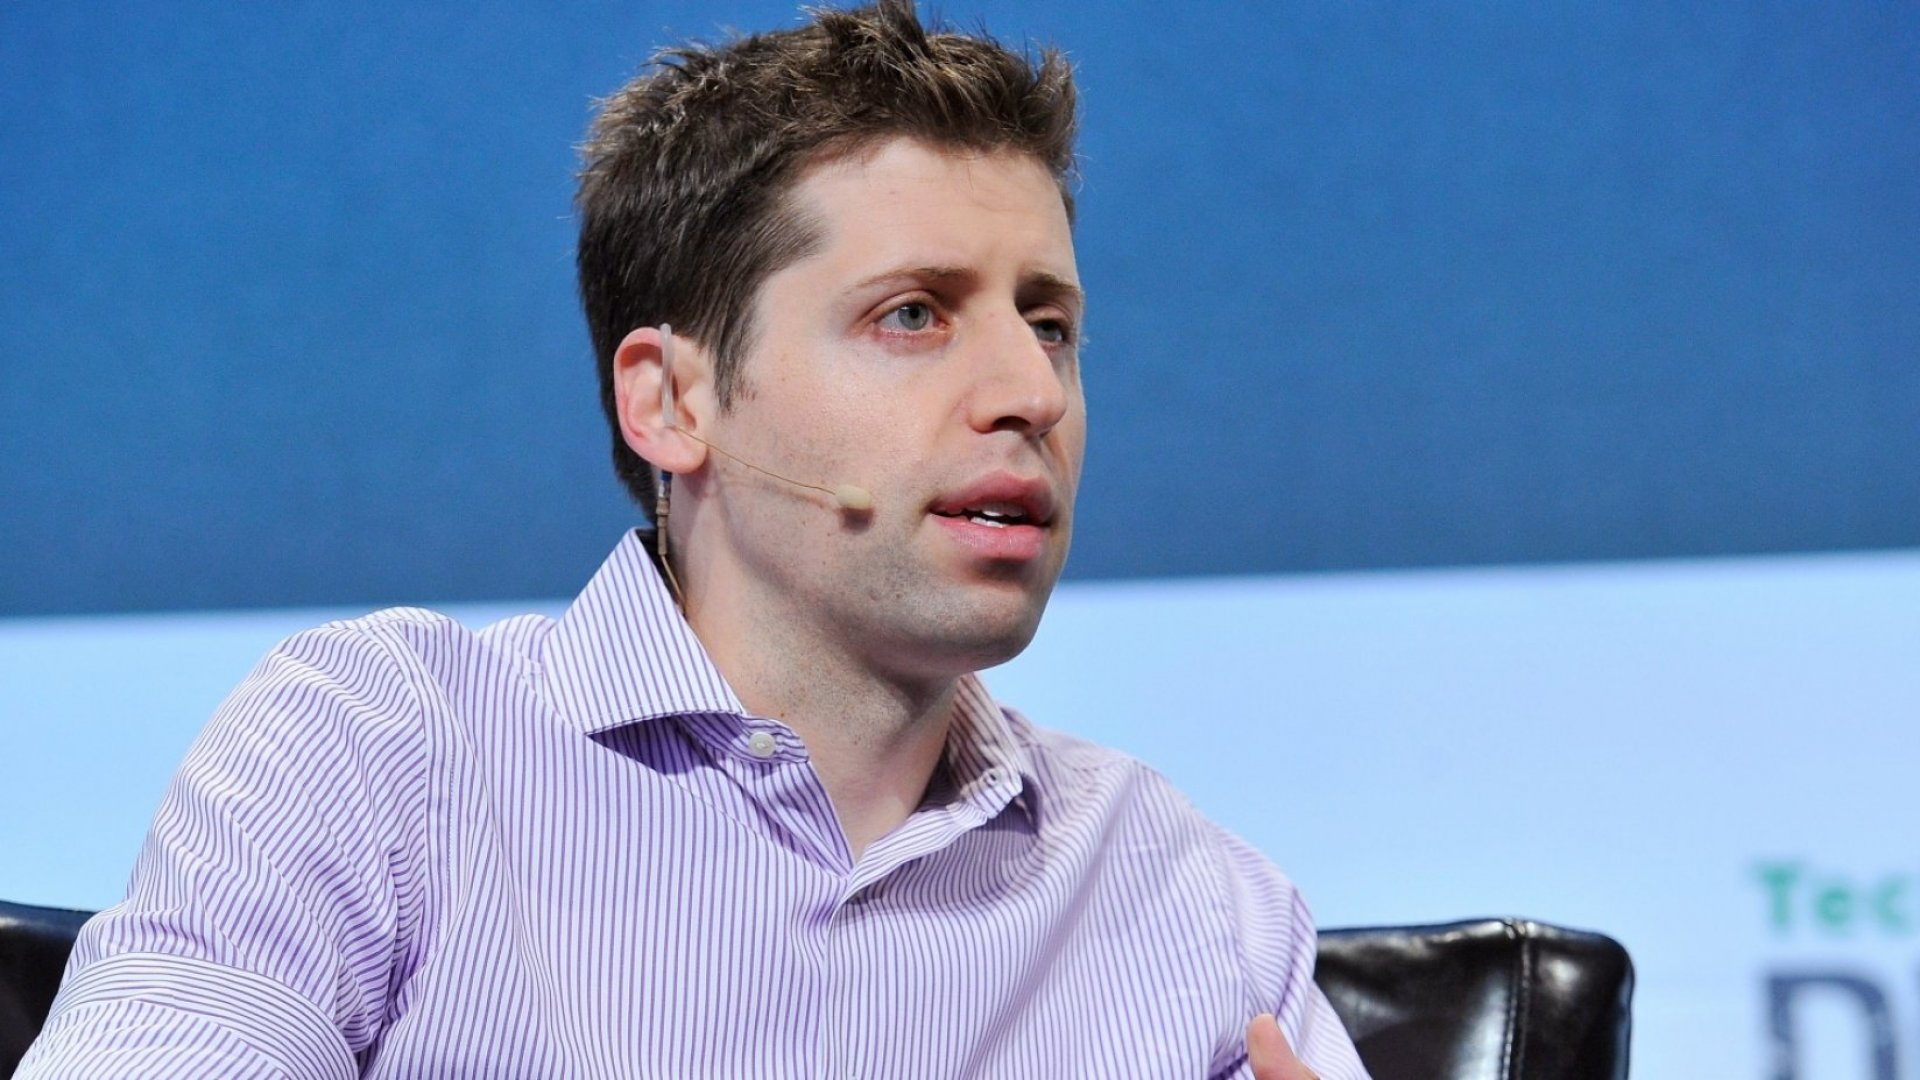 Silicon Valley's Tech Entrepreneurs Are Crafting Their Own 'Constitution' on Google Docs